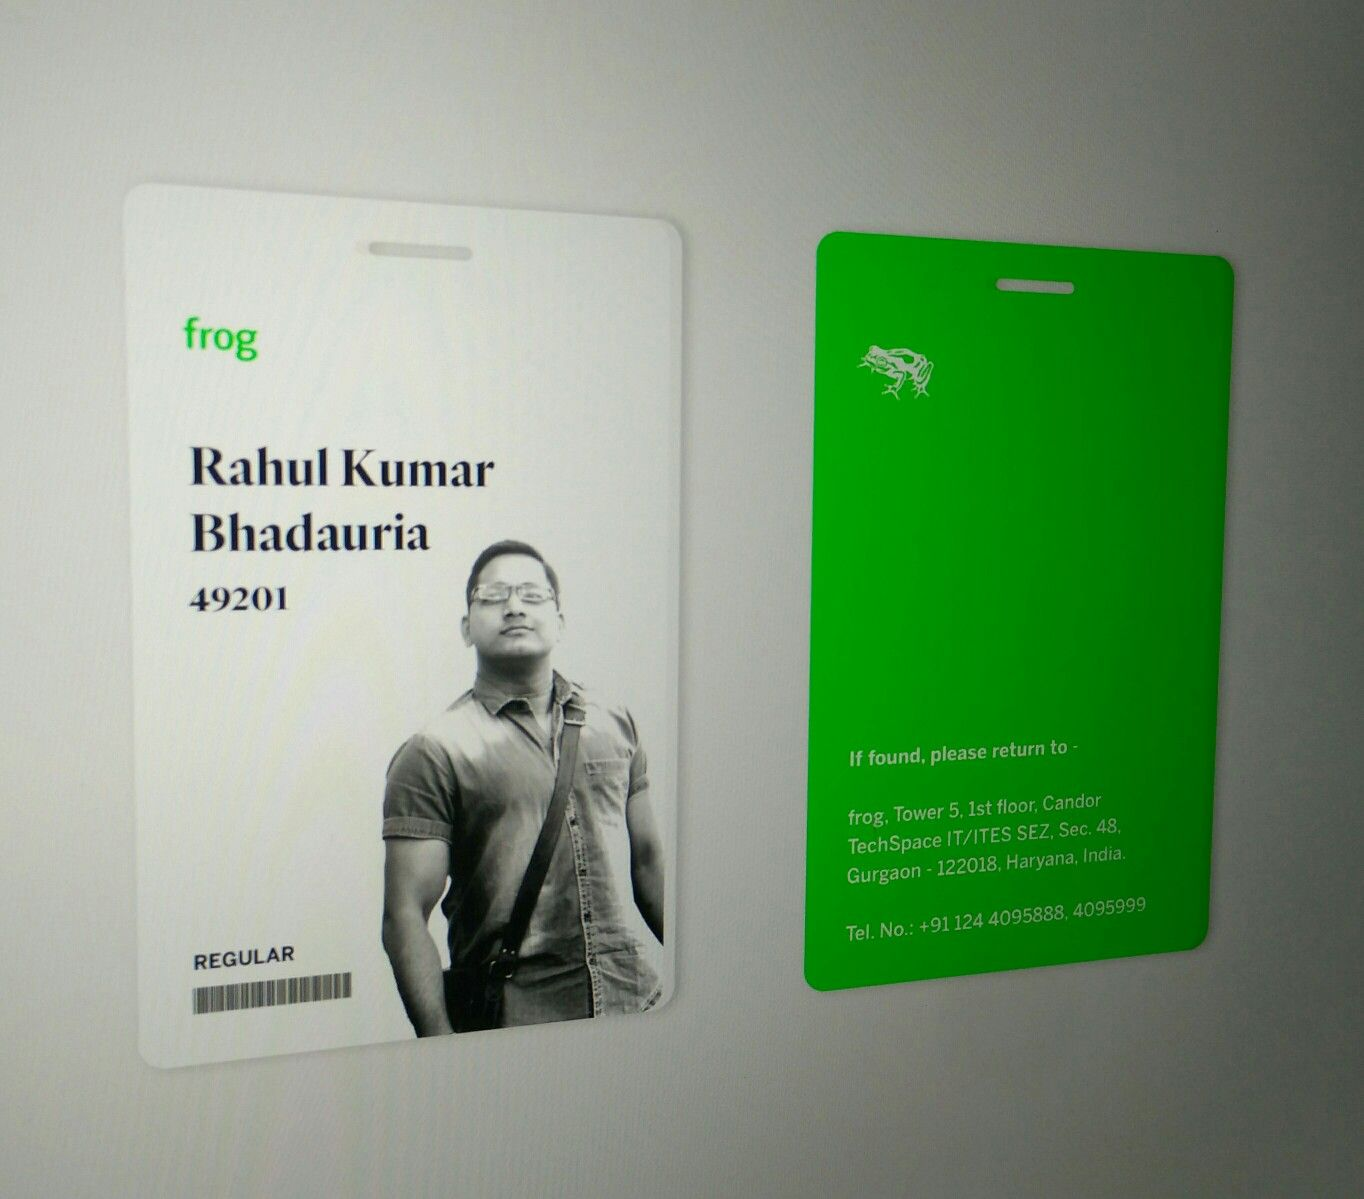 frog employee id card concept in progress   idcard  frog